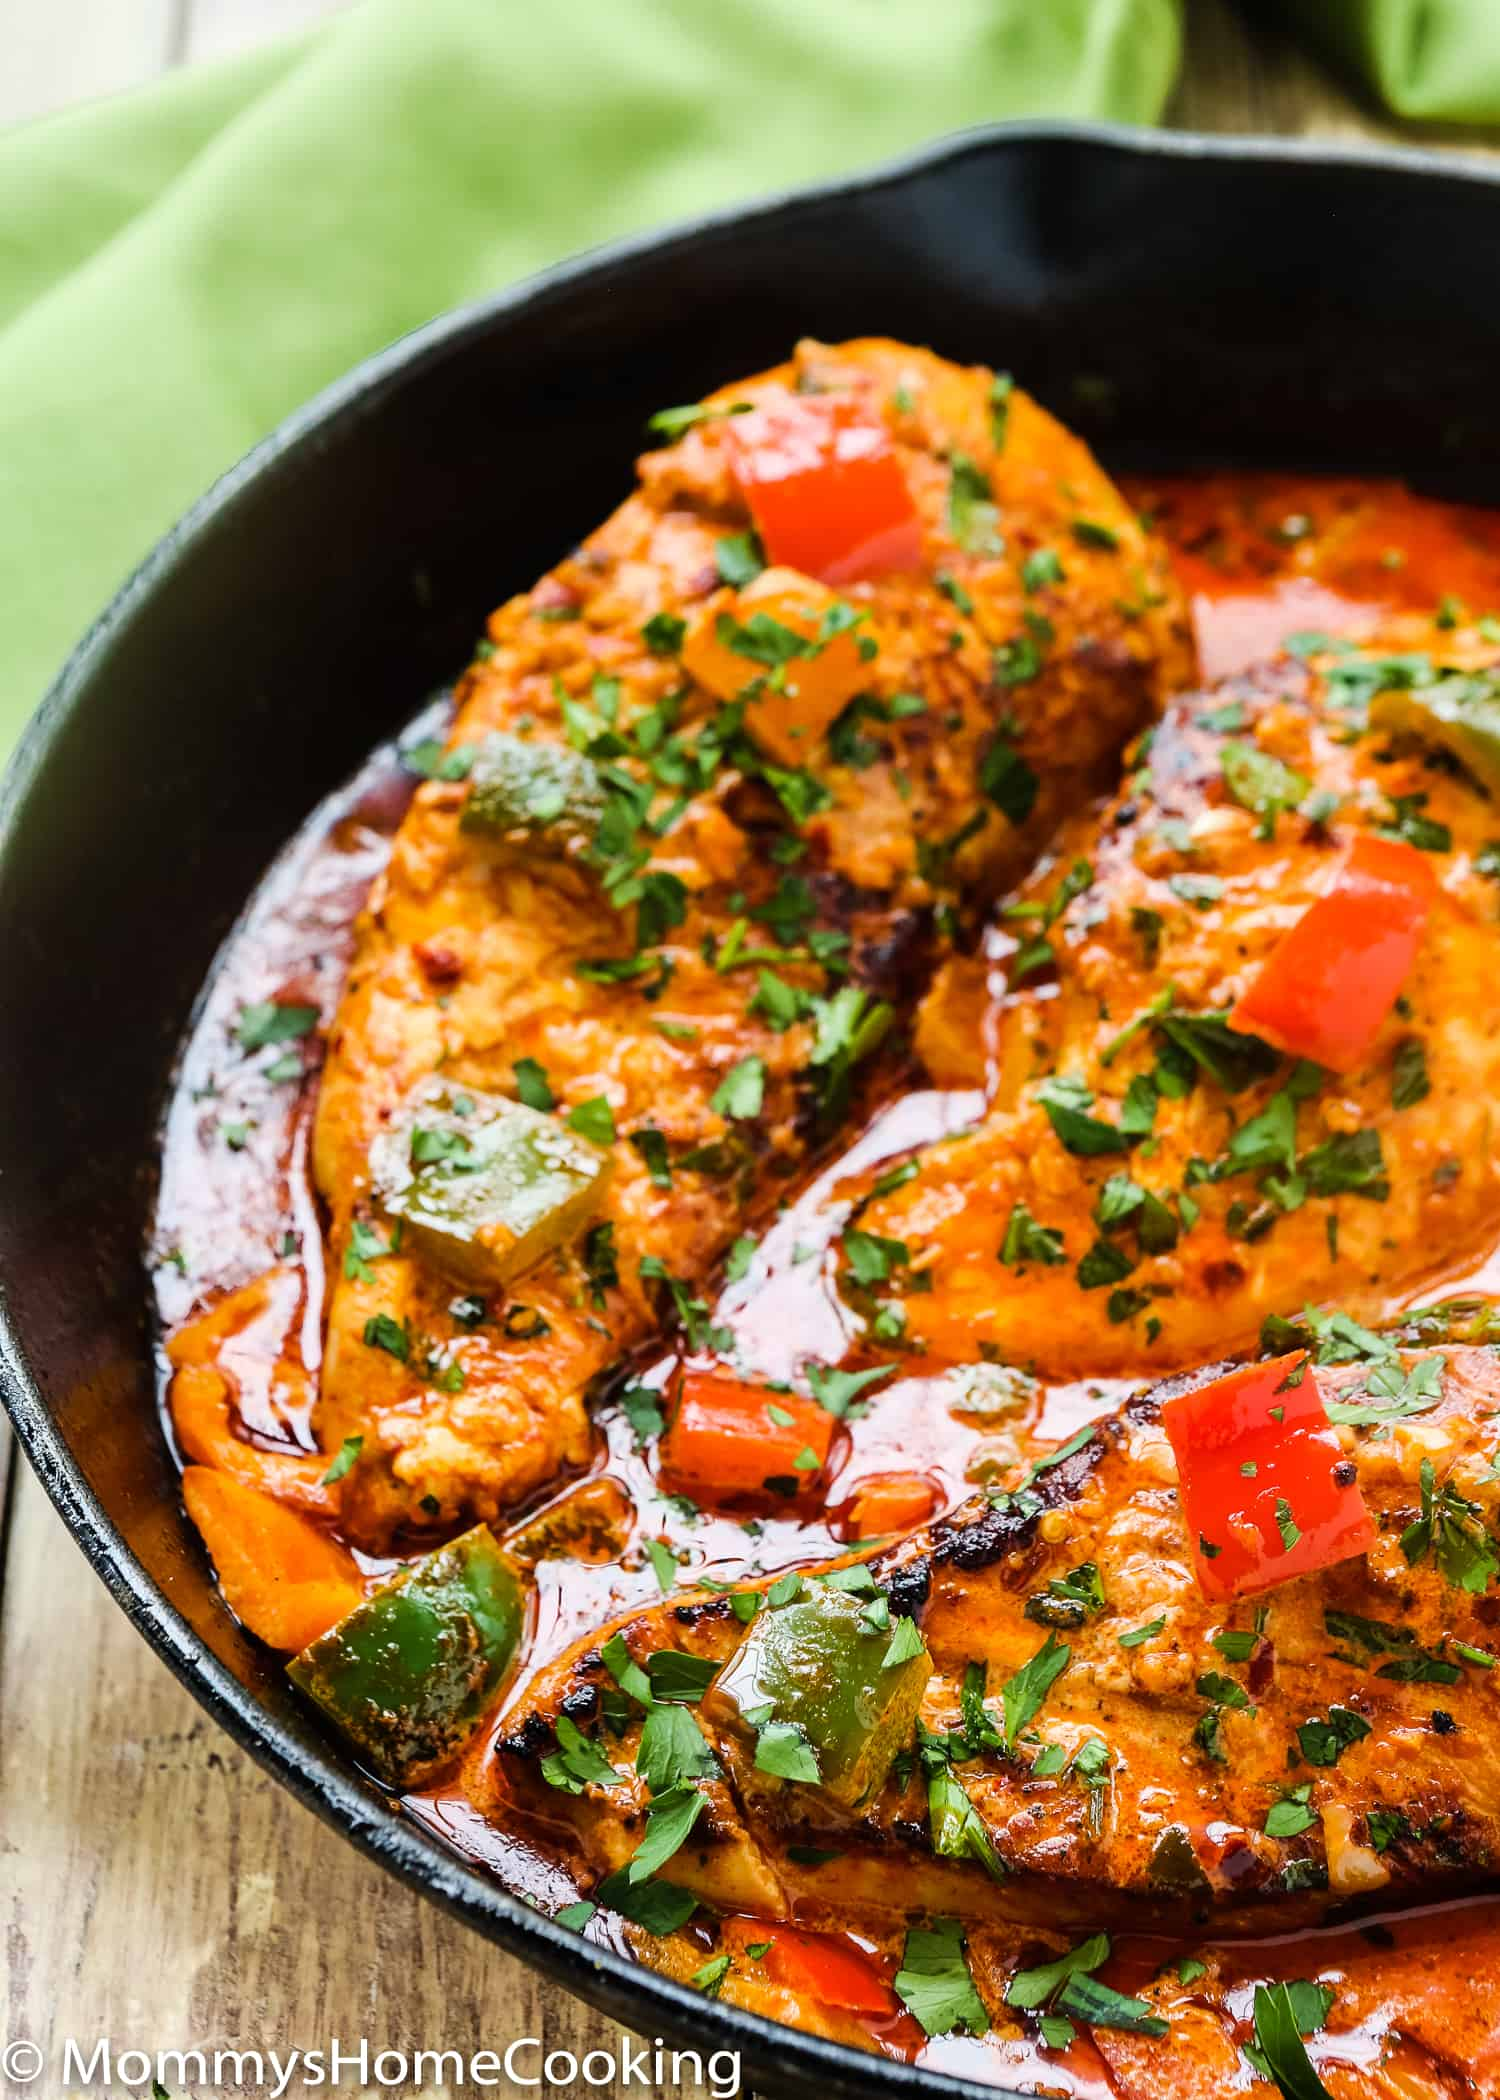 This Creamy Peri Peri Chicken is zesty, succulent, and easy to pull off. A simple weeknight dish, yet fancy enough to wow your guests at any gathering. http://mommyshomecooking.com